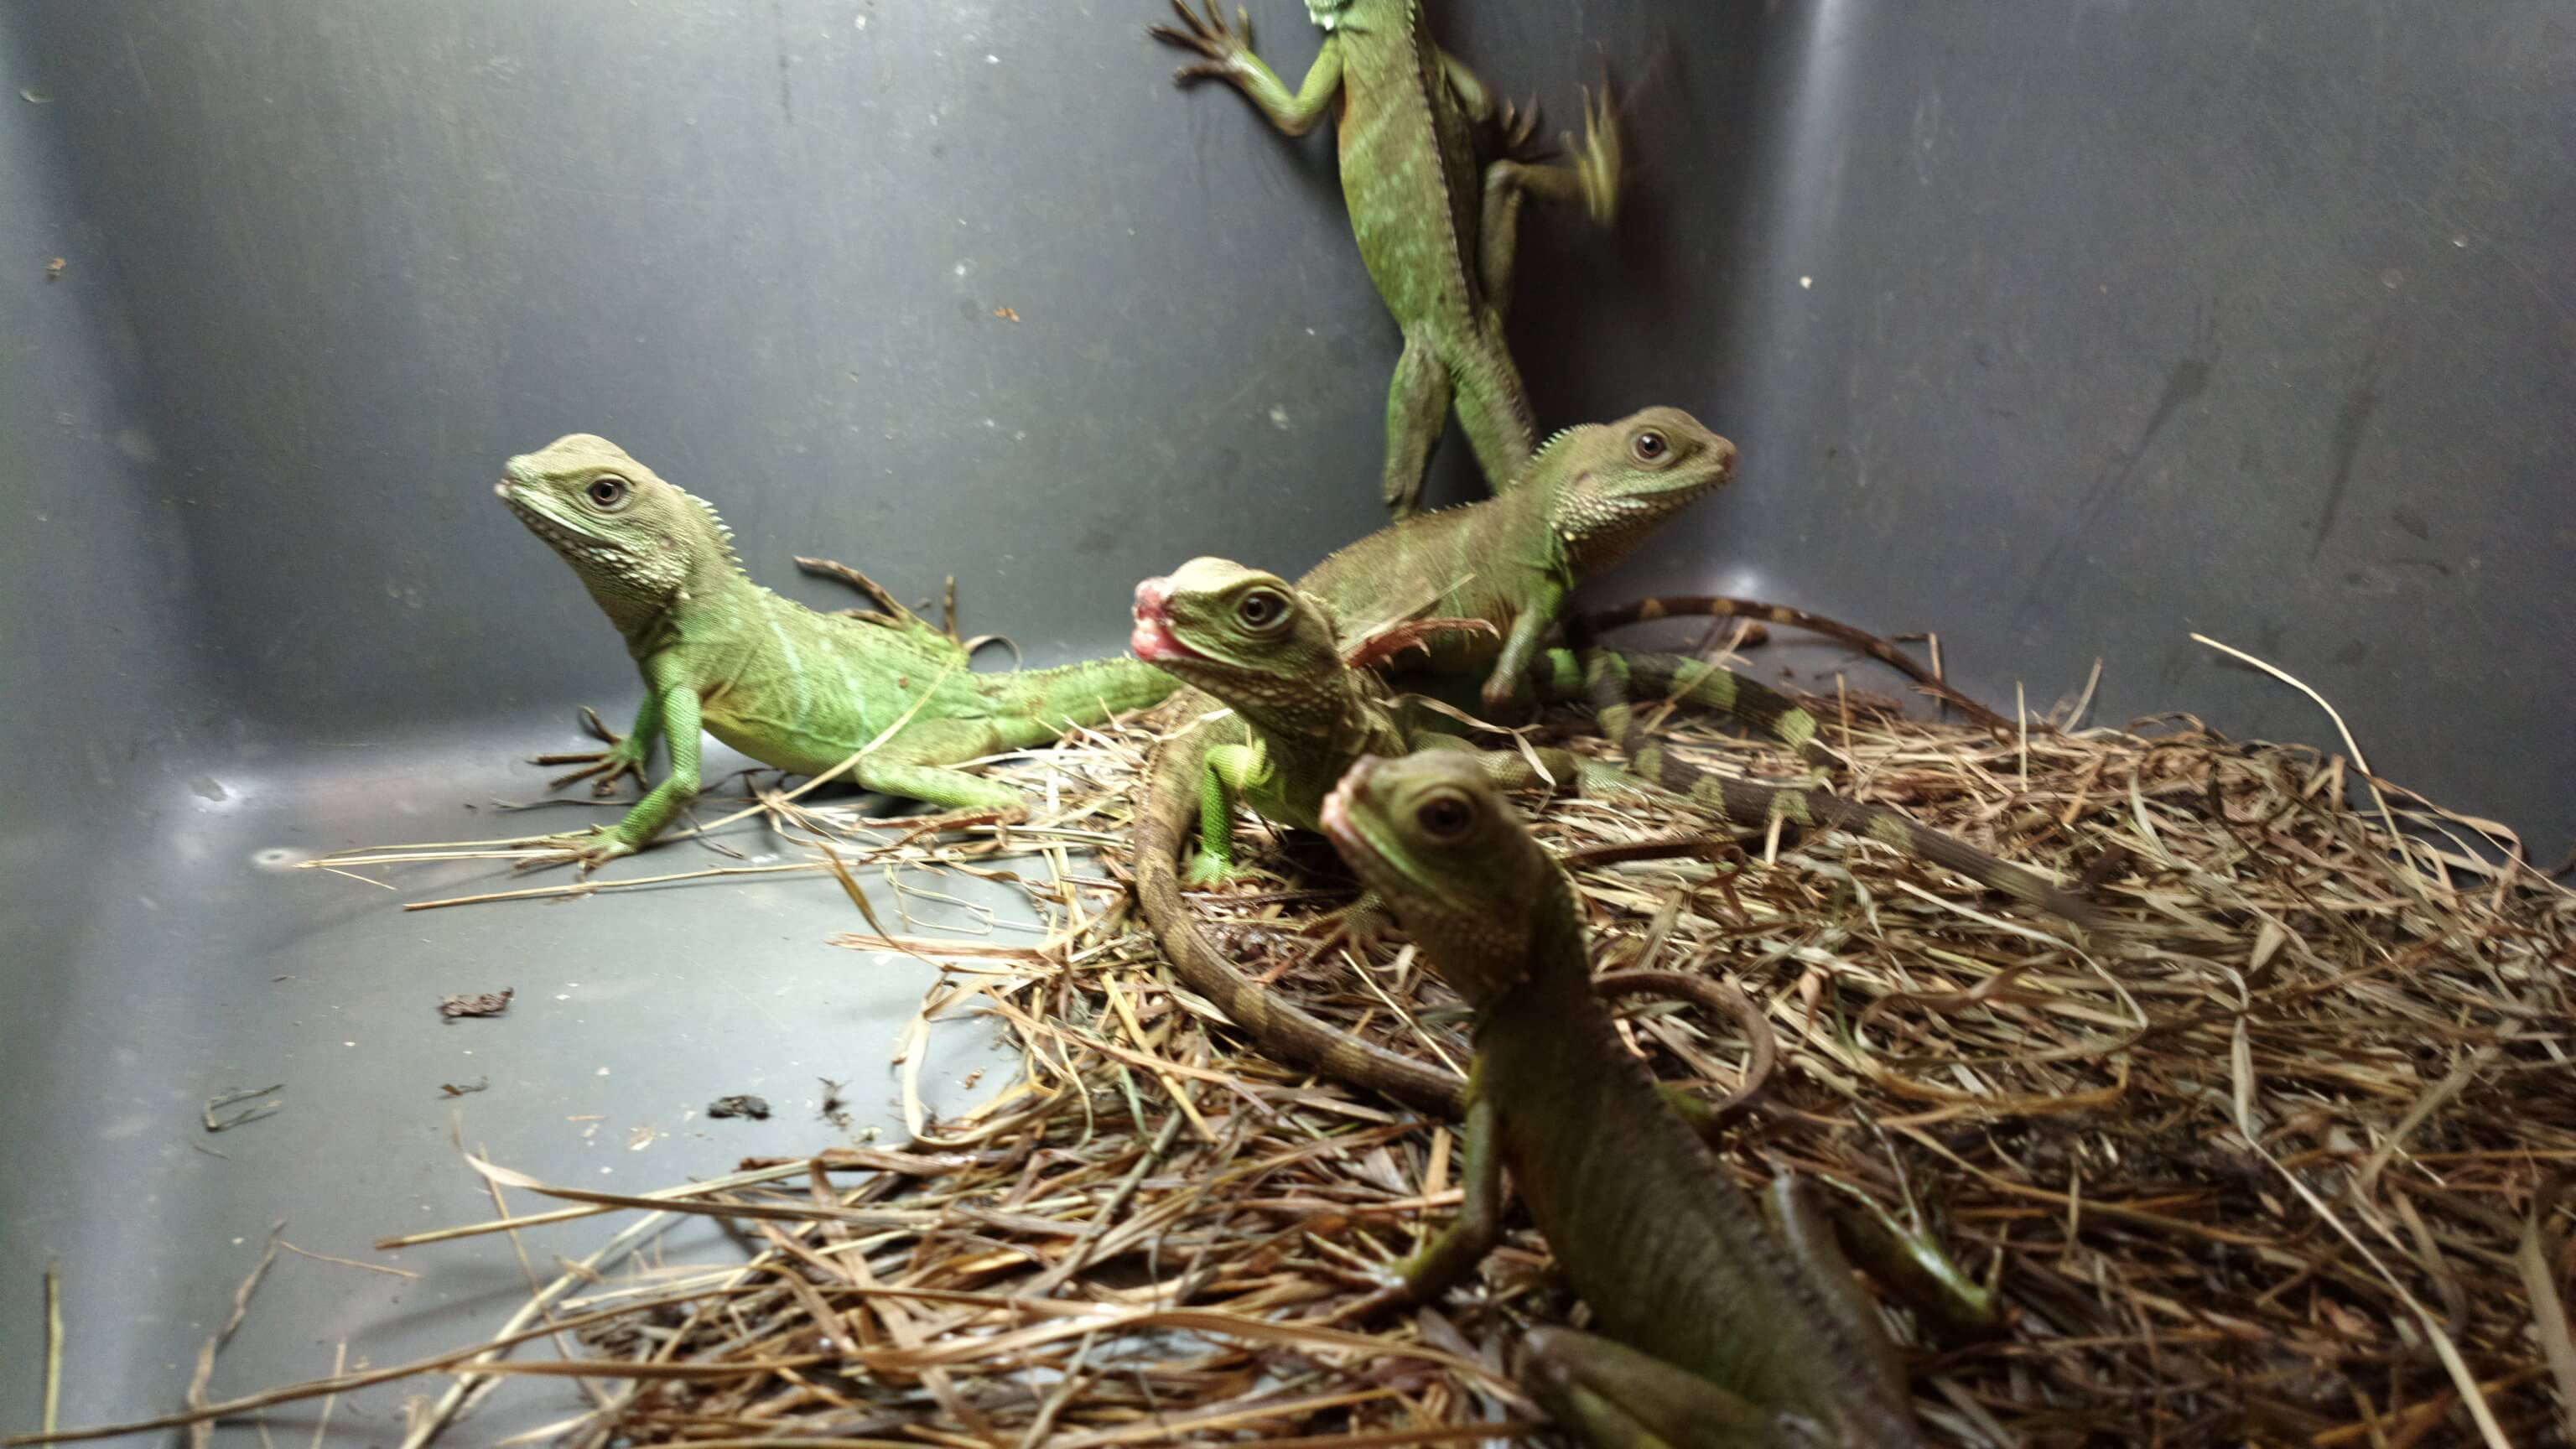 Petsmart lizards